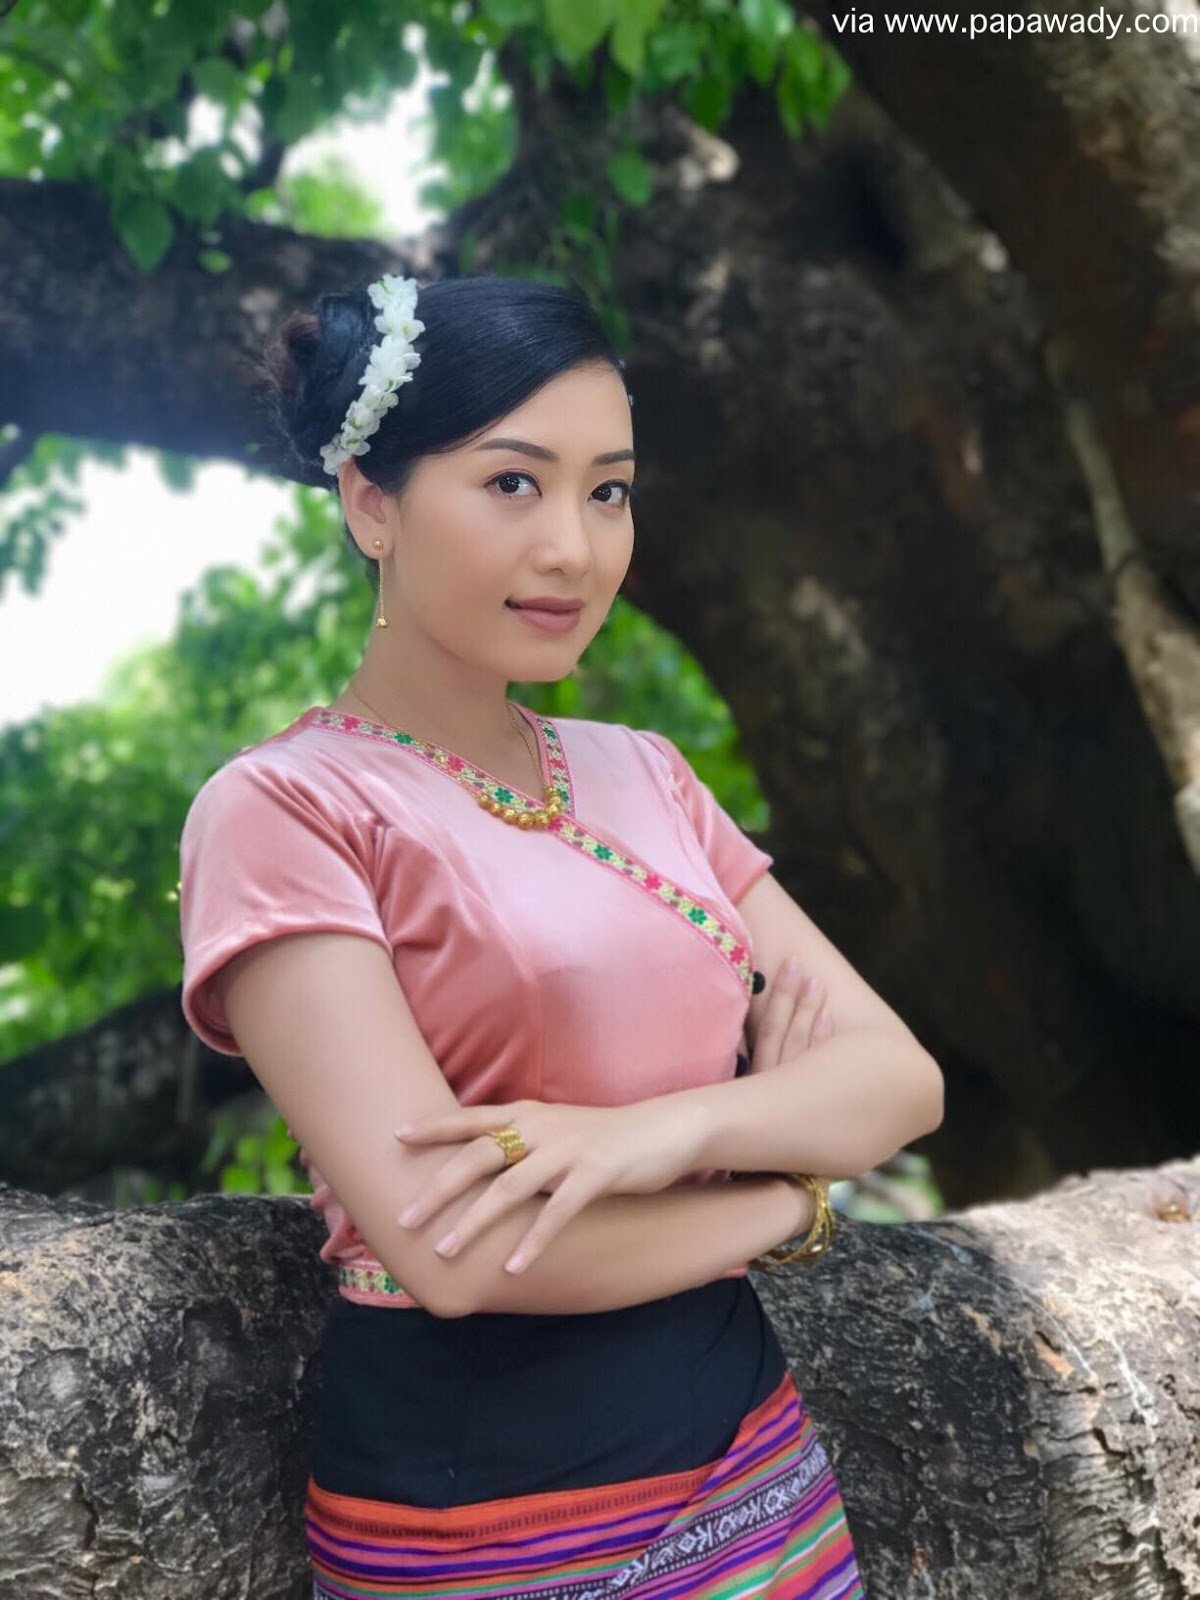 Yu Thandar Tin Fashion Style As A Myanmar Village Girl